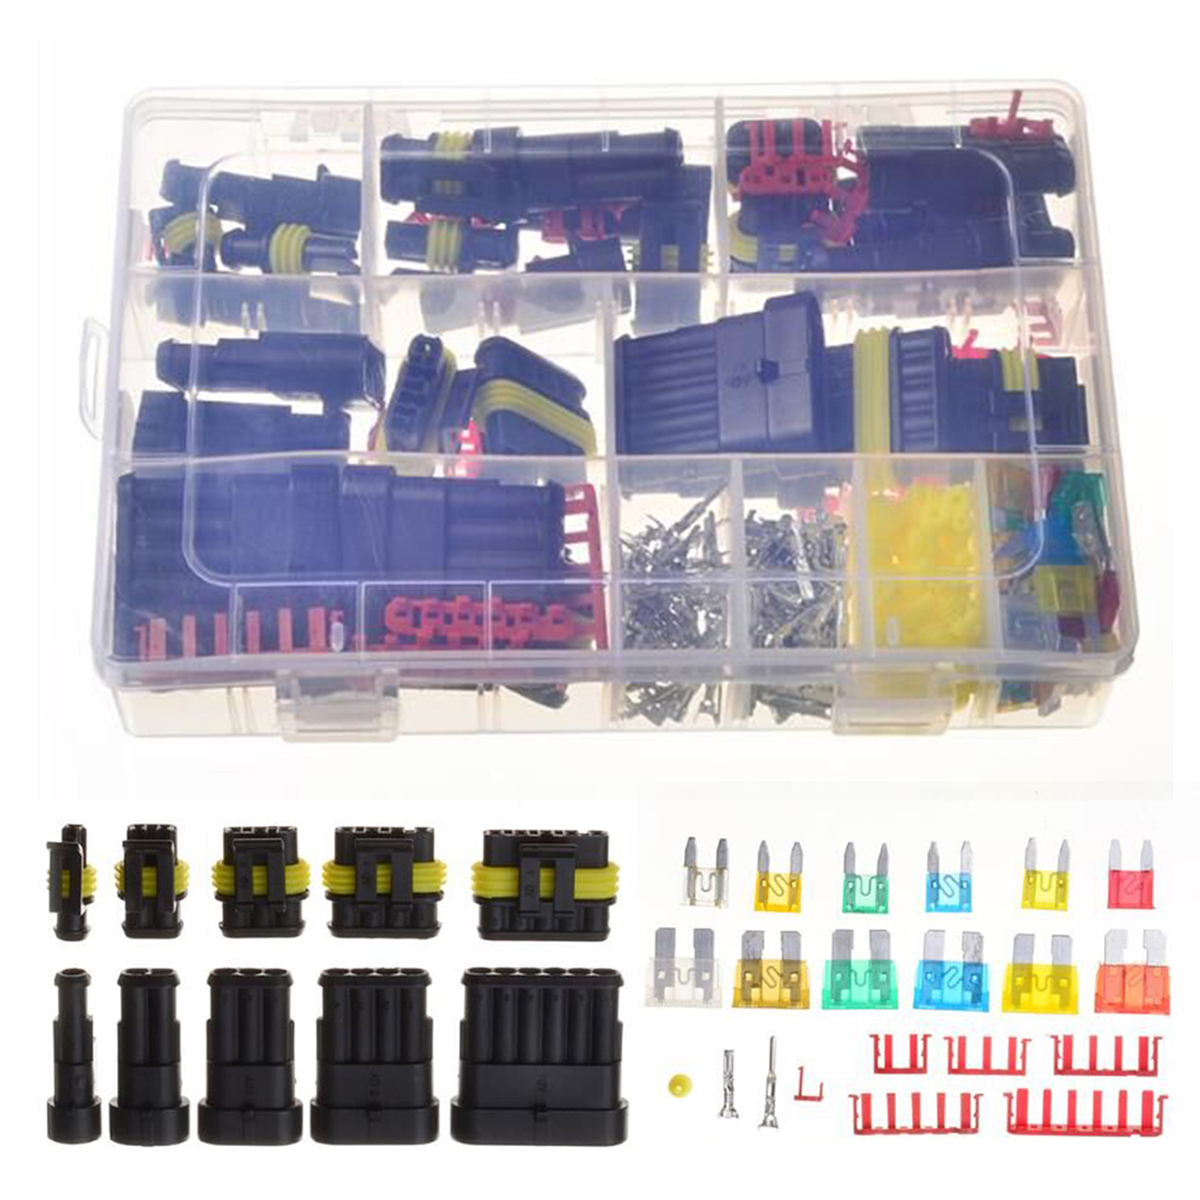 1/2/3/4/5/6 Pin Way Waterproof Car Electrical Connector Terminals + Automotive Standard Blade Fuse Fuses Set For Car Truck 2 3 4 6 pin 2 3 4 6 way sealed waterproof automotive marine electrical wire connector plug set car truck kit